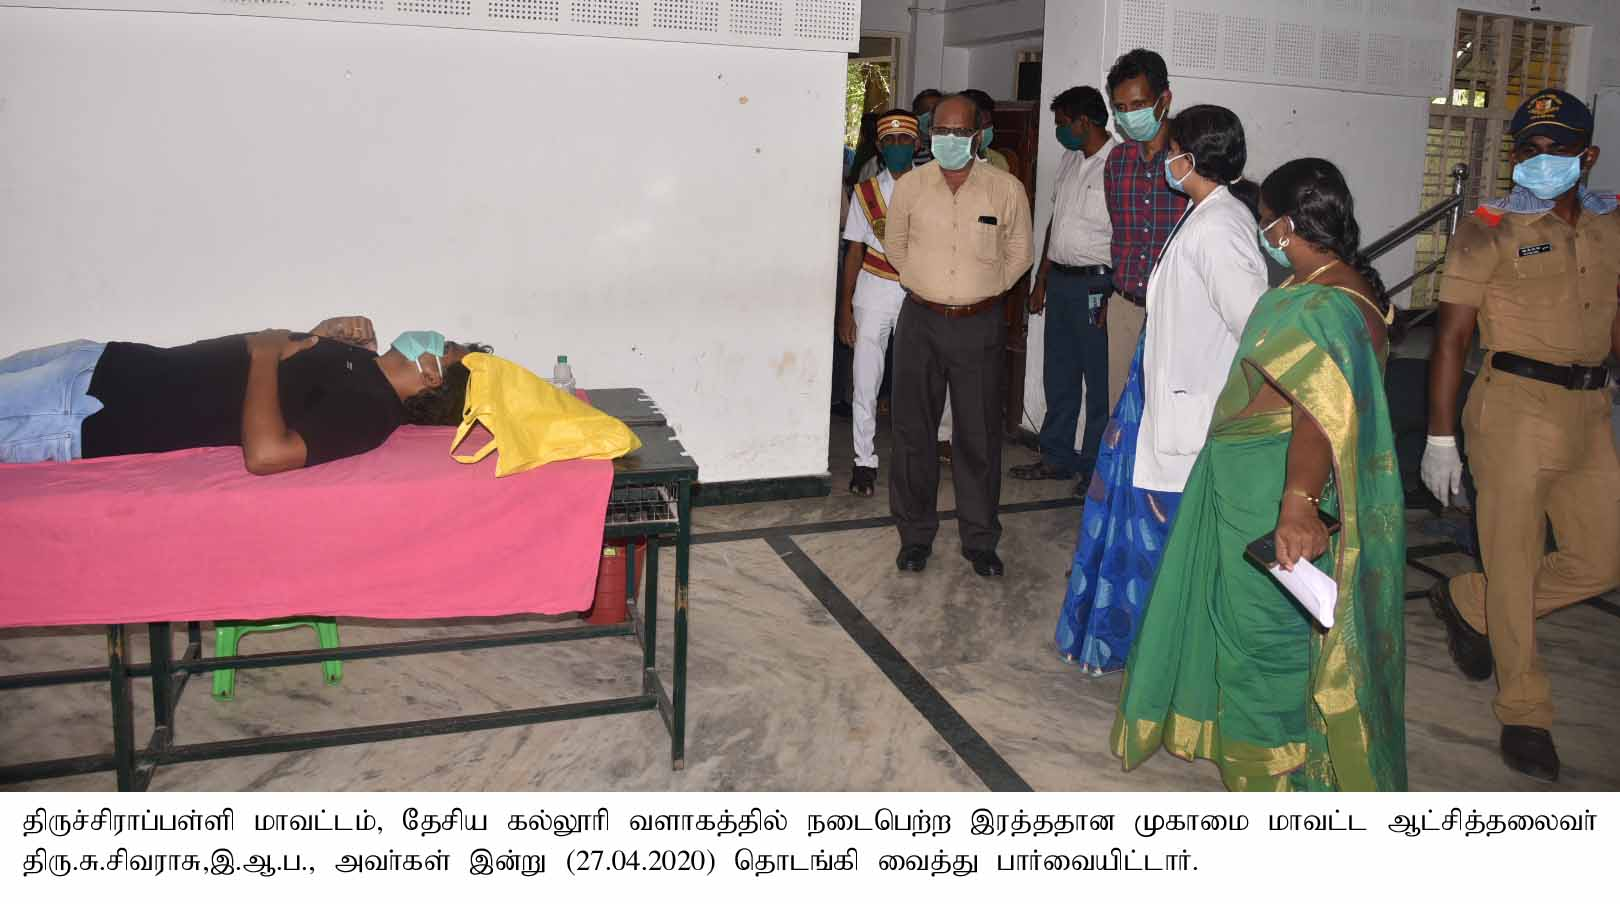 District Collector Inspected the Blood Donation Camp on 27-04-2020